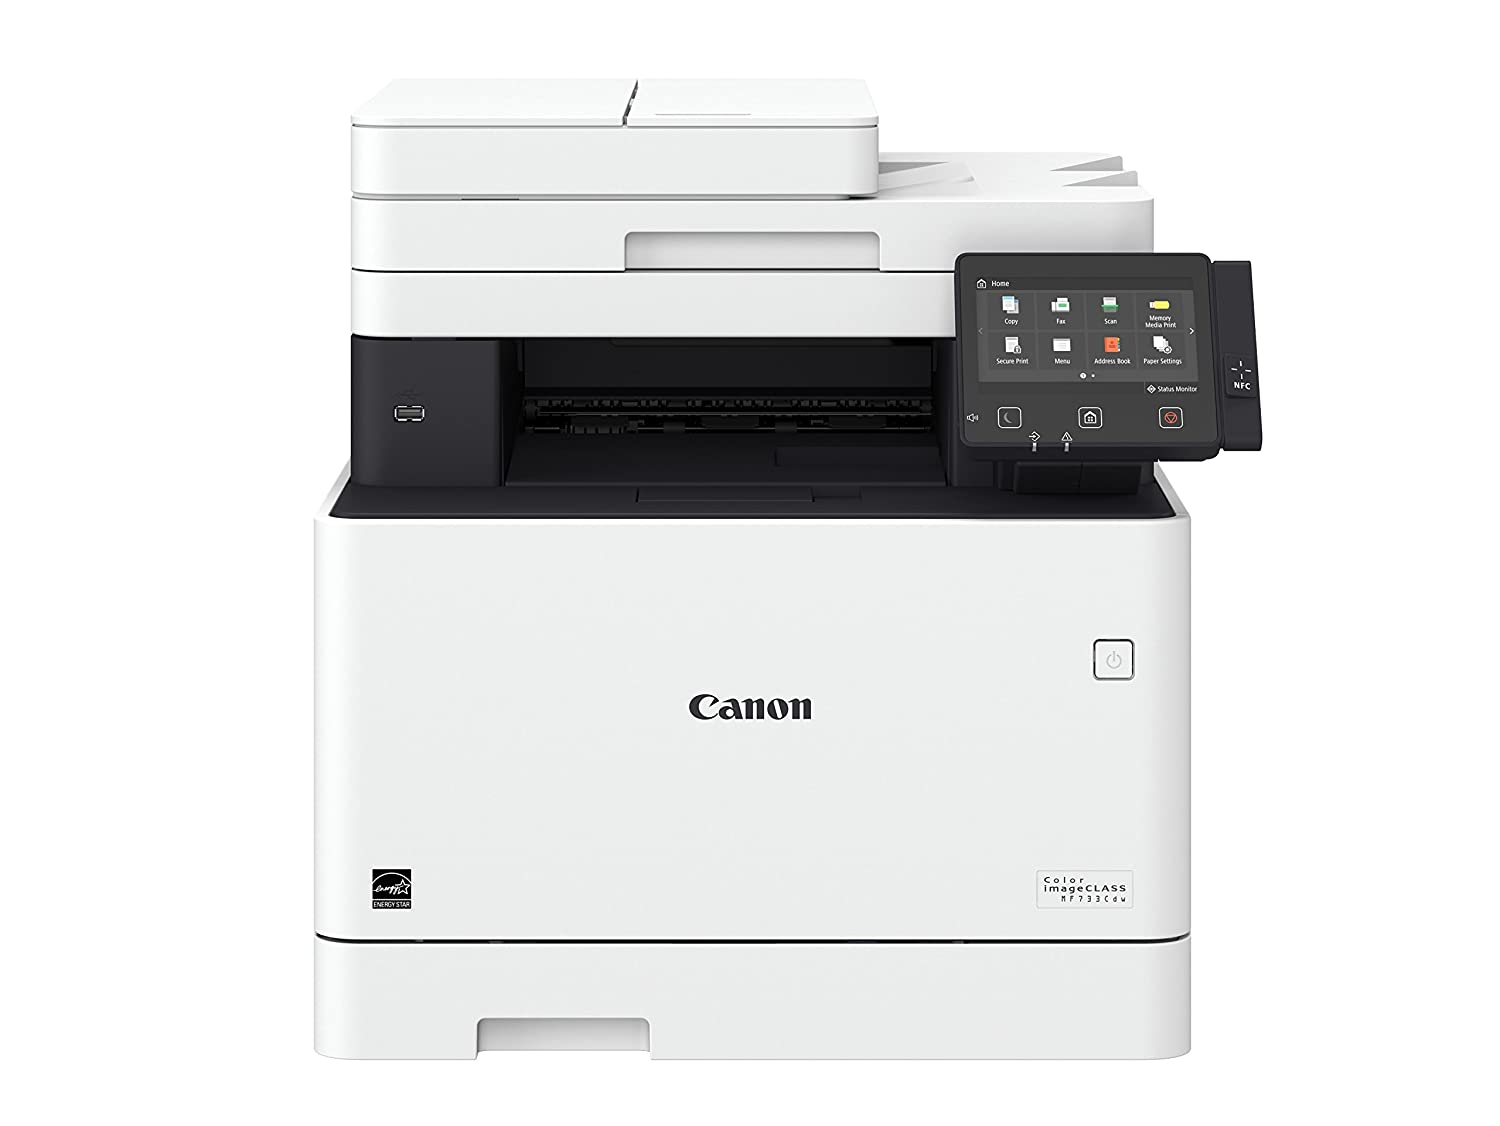 Top 10 Best Printers for Graphic Designers (2020 reviews) 10